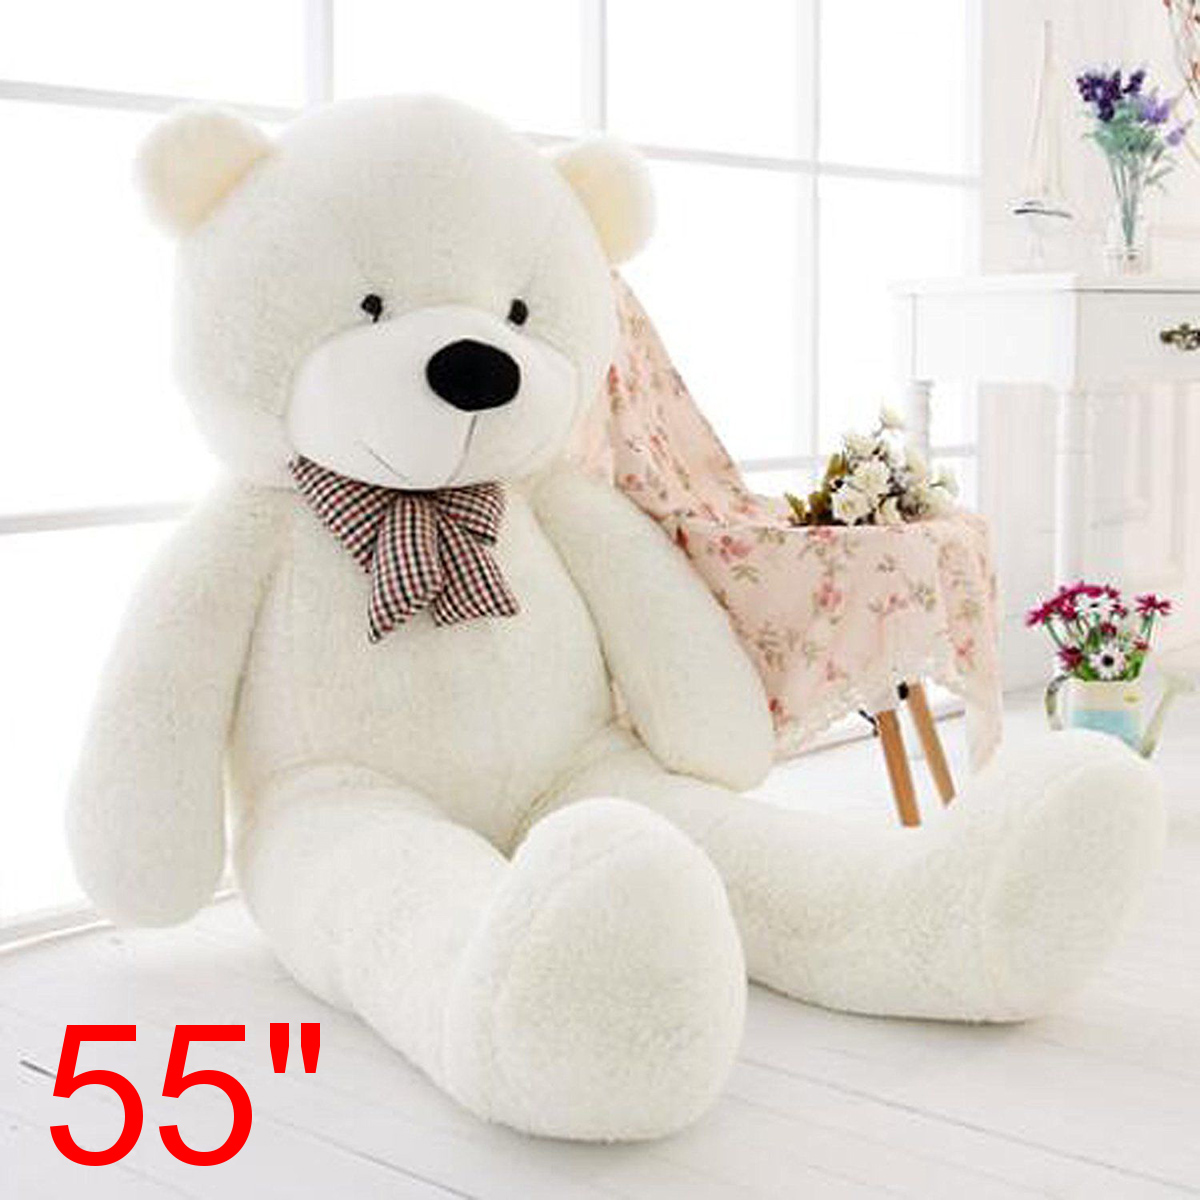 55/'/'Big Teddy Bear White Plush Soft Toys Doll Only Cover Case No Filled Kid Gift